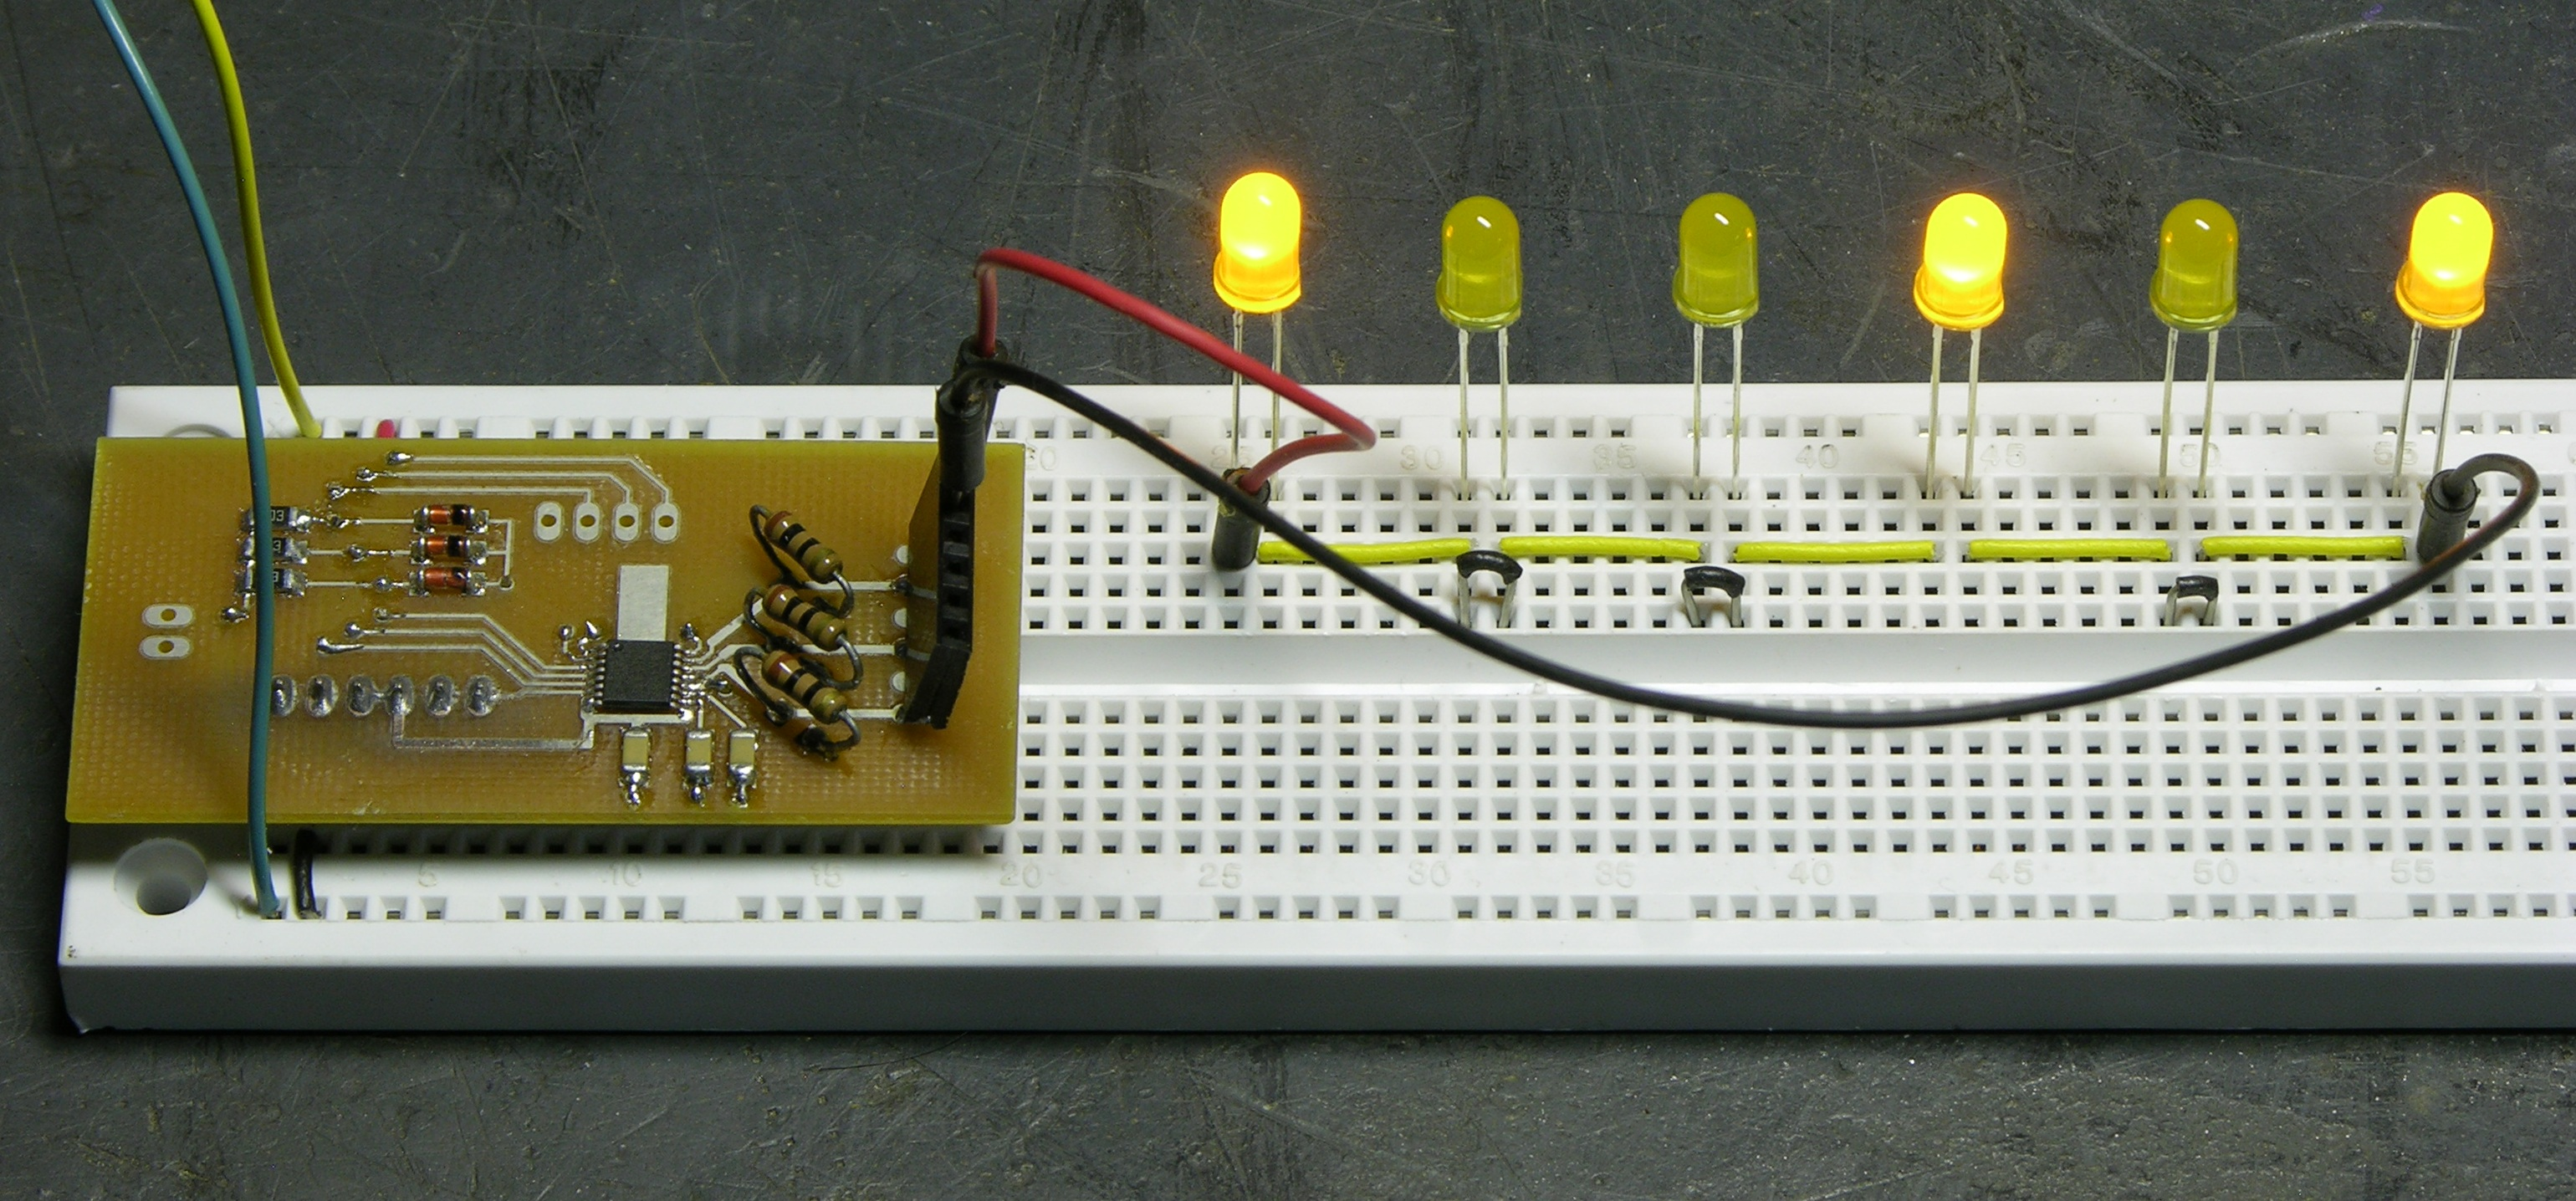 Circuits Keiths Electronics Blog Constant Current Drives Two 3 Watt Ledselectronics Project Circuts Led String Driver With Leds Shorted